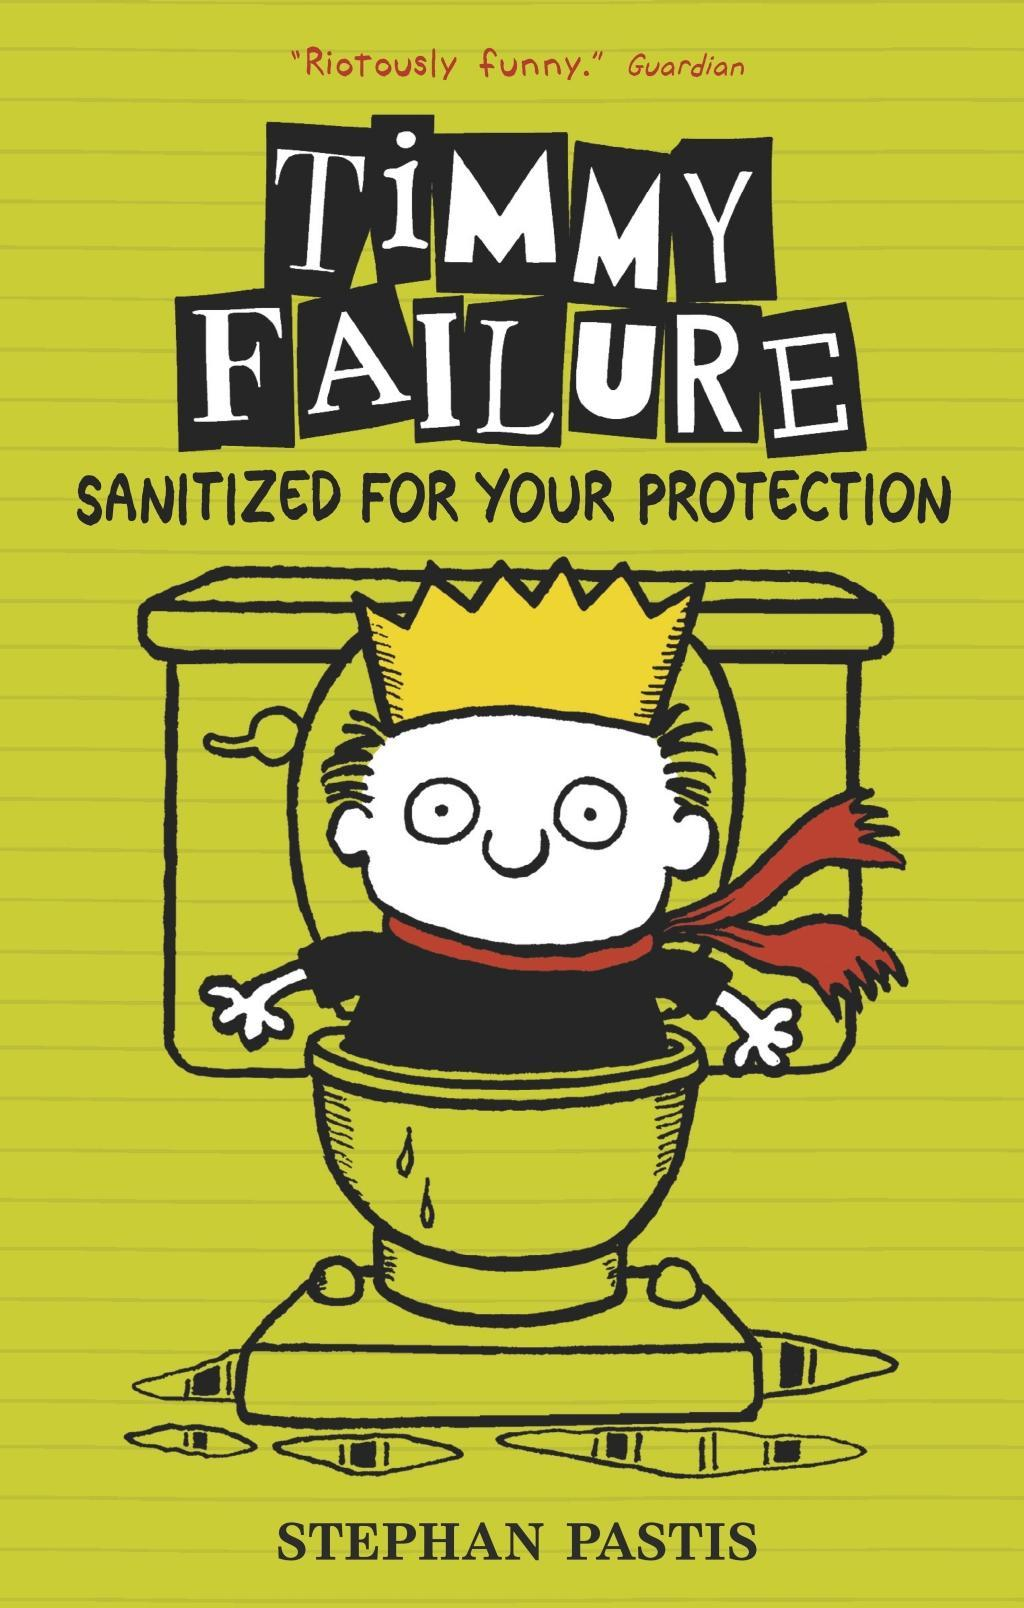 Timmy Failure - Sanitized for Your Protection Stephan Pastis